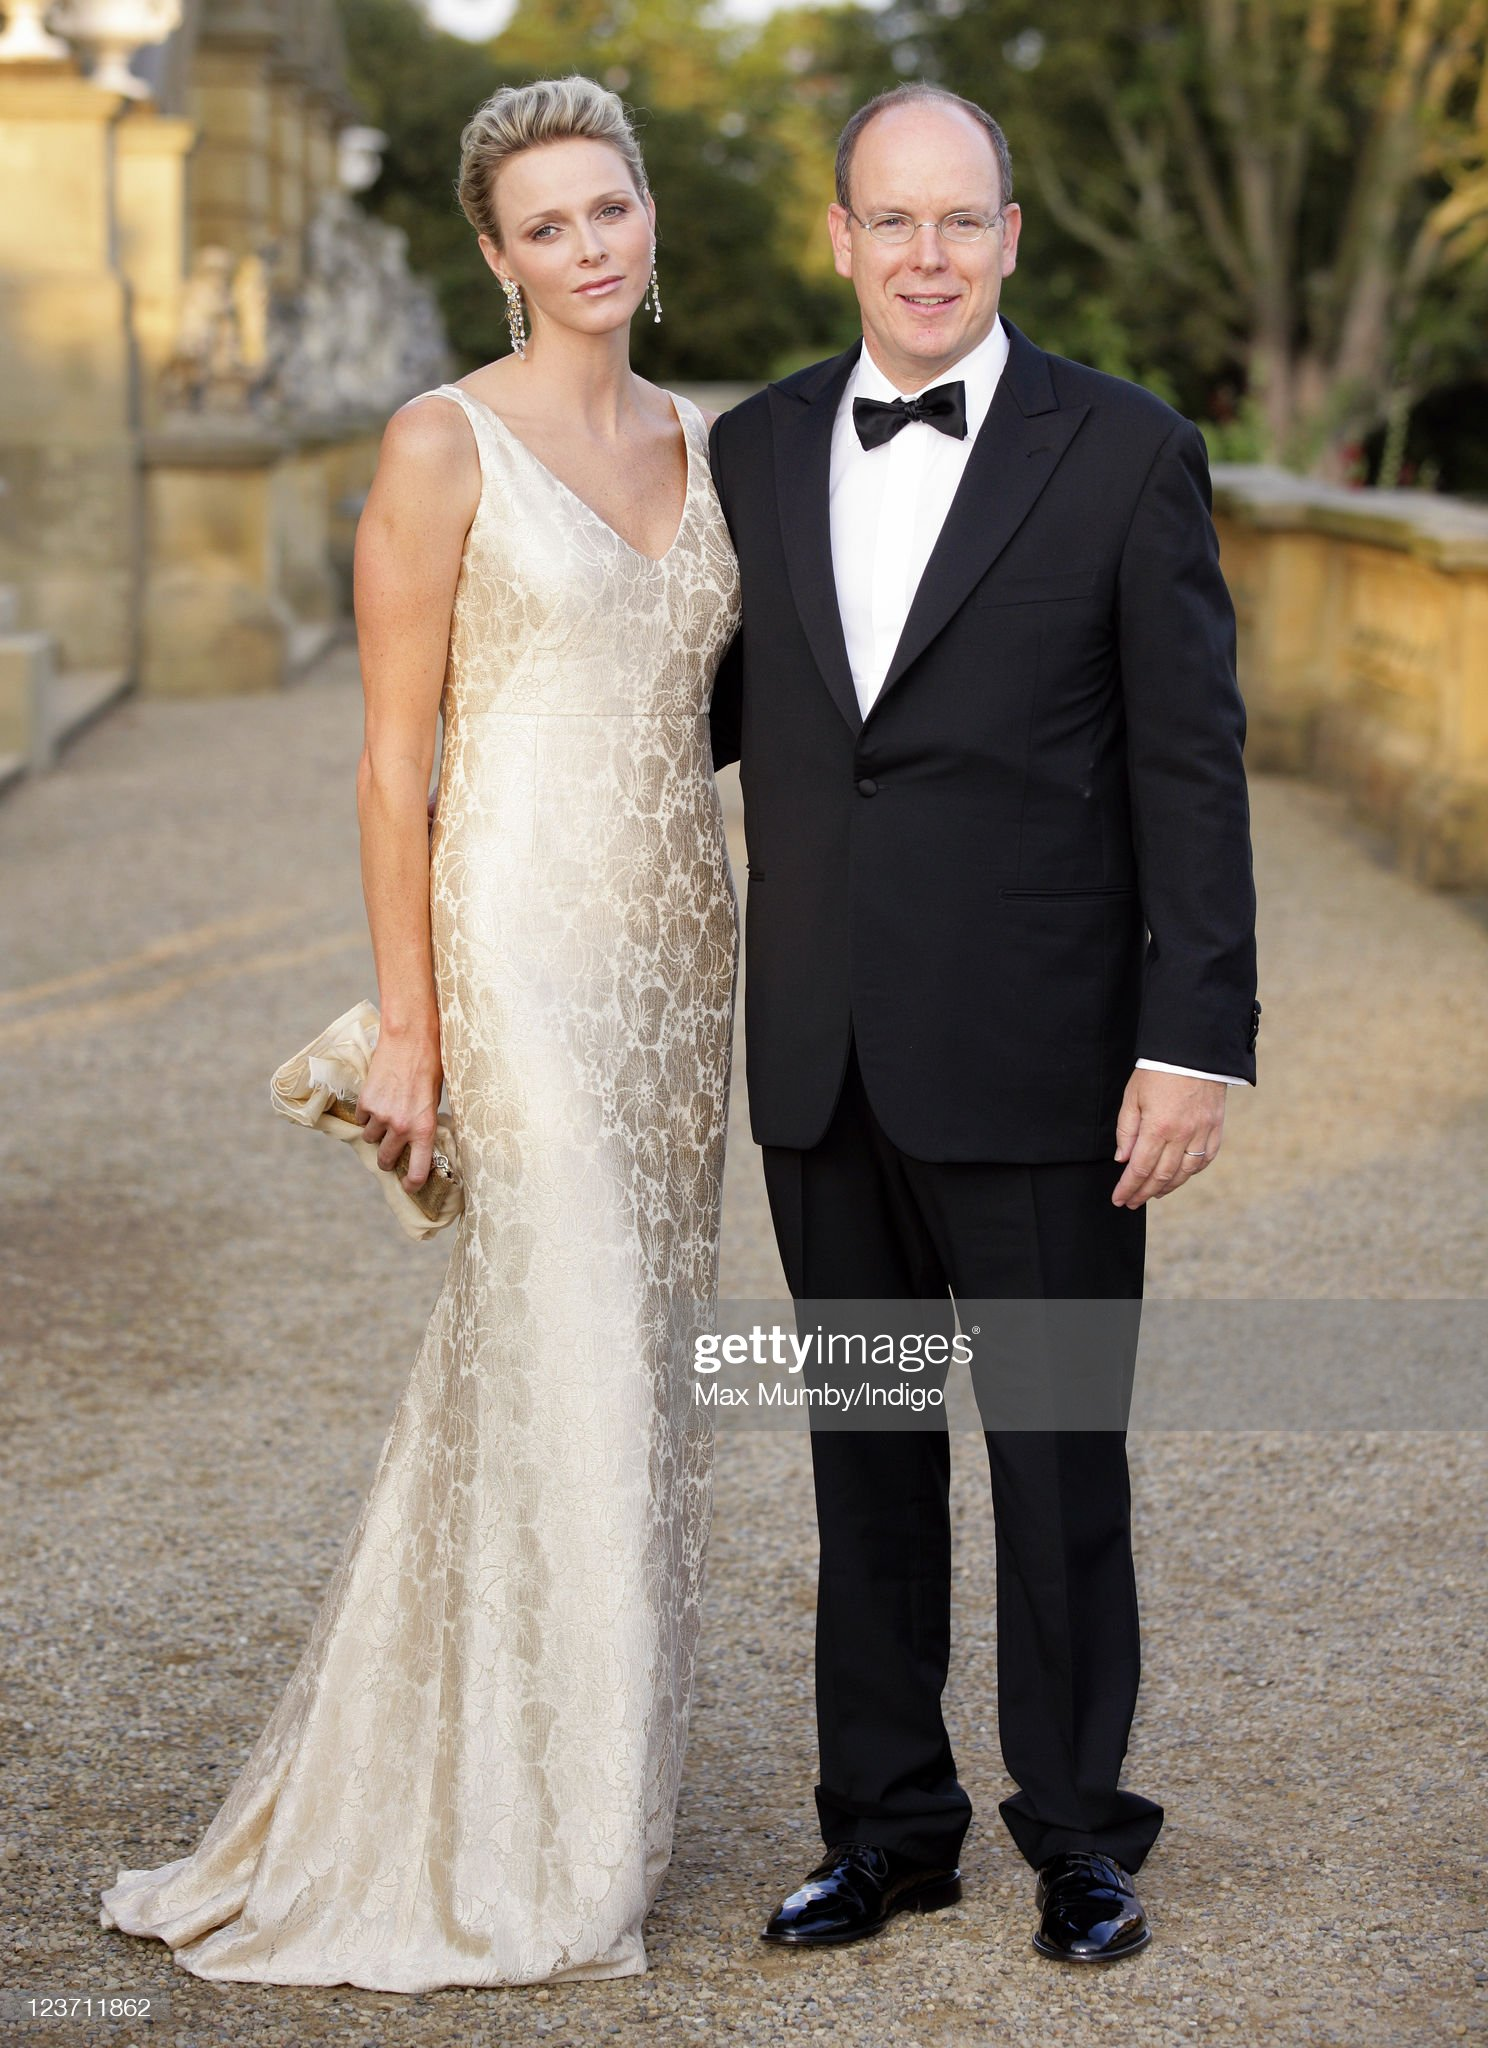 Prince Albert II And Princess Charlene of Monaco Attend Yorkshire Variety Club Golden Jubilee Ball : News Photo